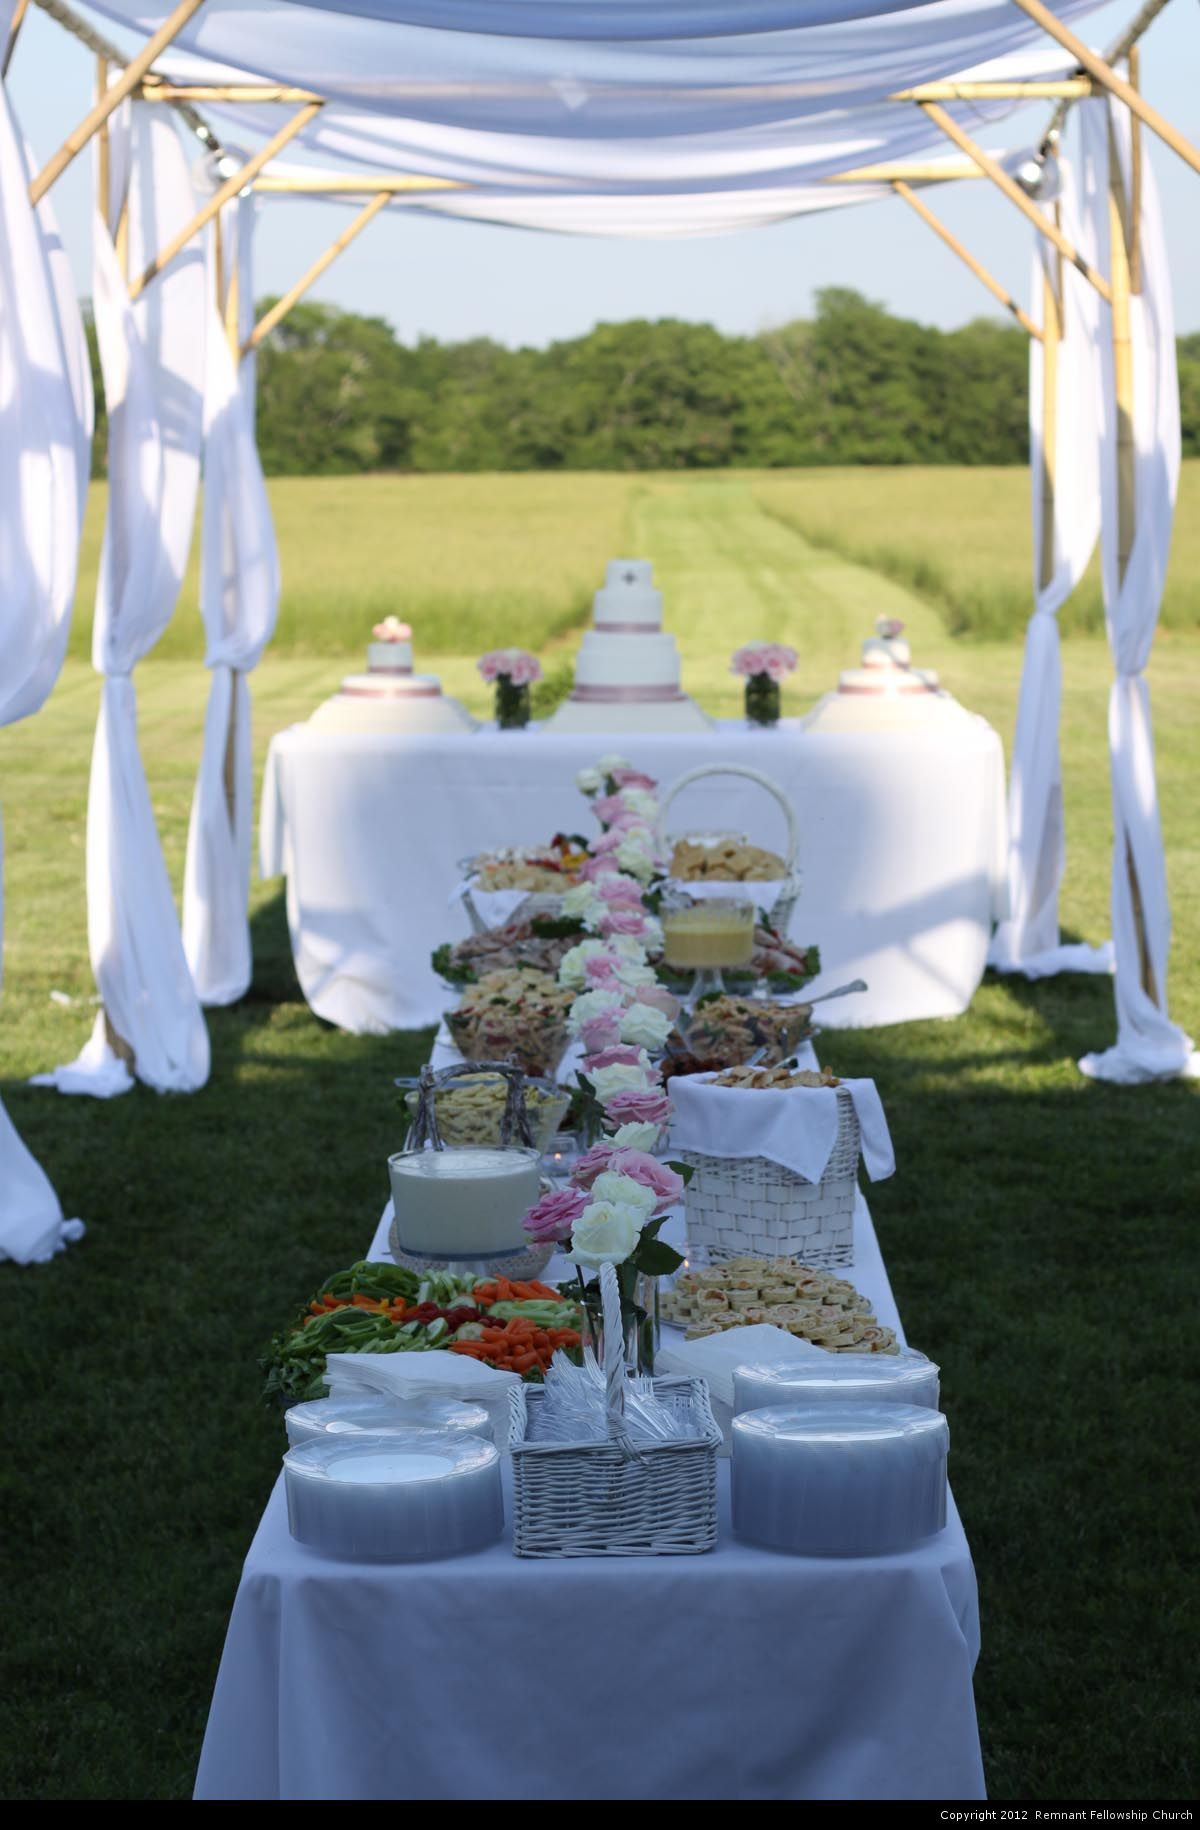 Outdoor Wedding Reception With Elegant White Food Table And Pink Flowers